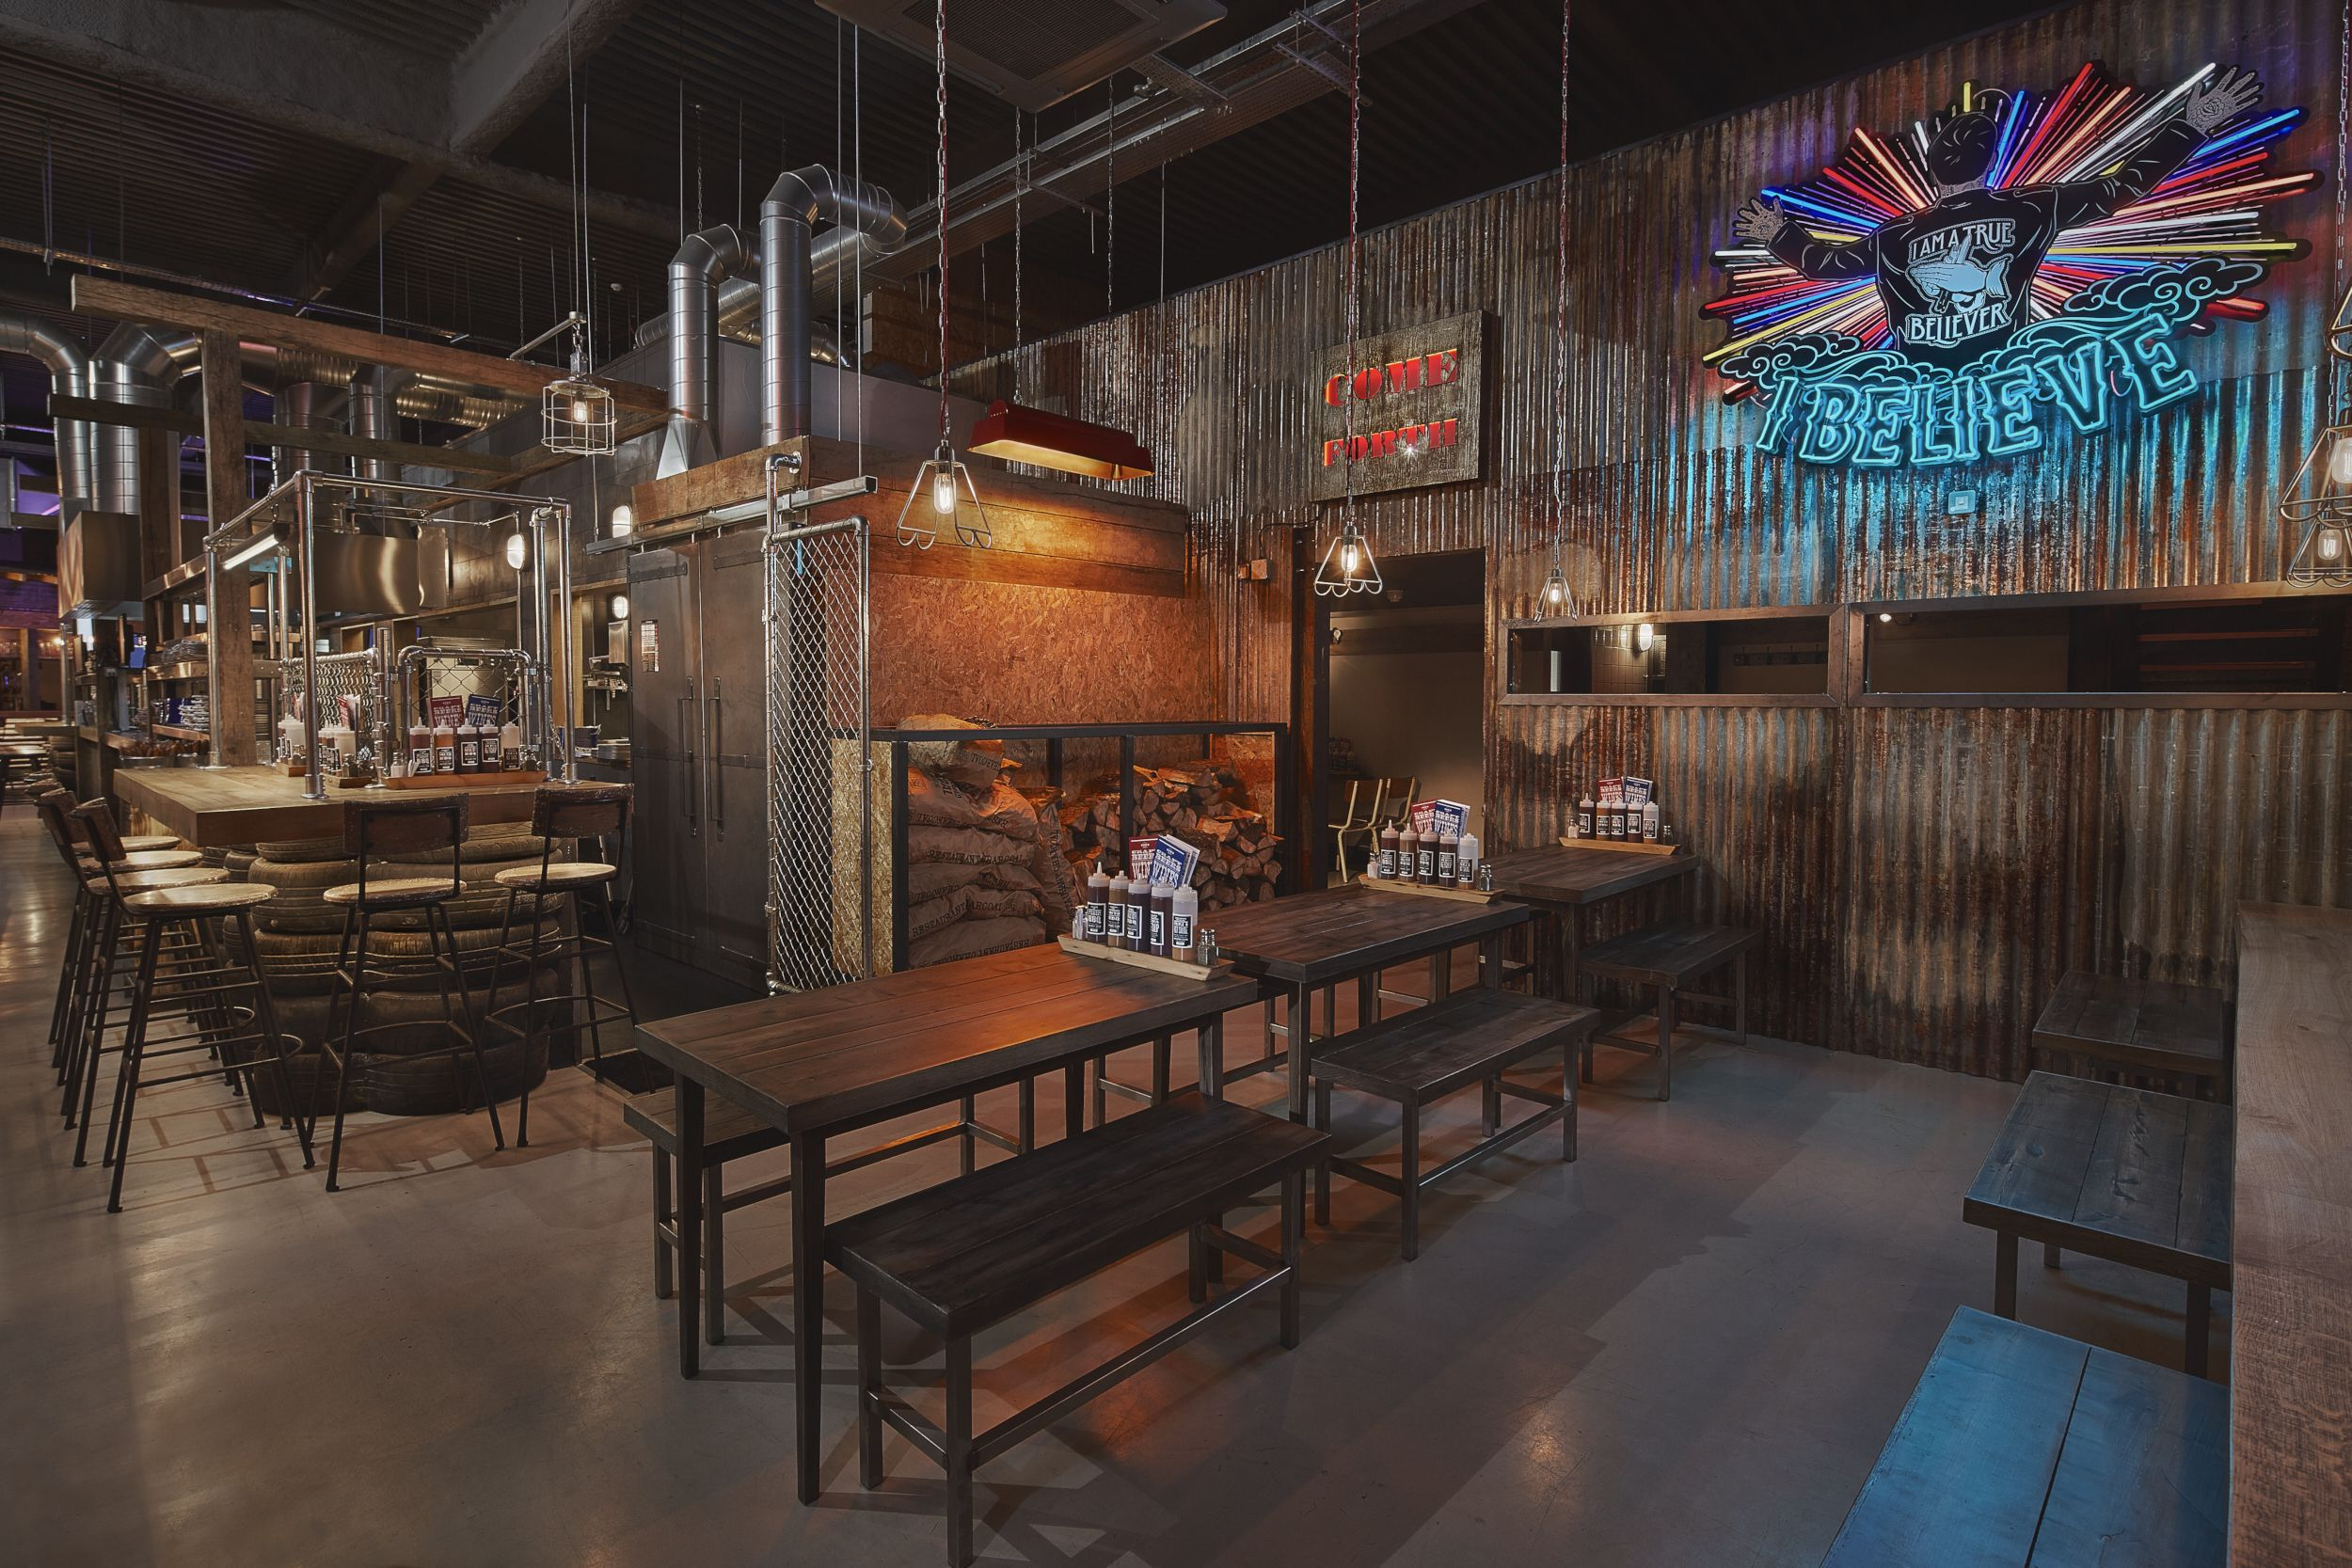 southern bbq restaurant interior - Google Search | Project ...